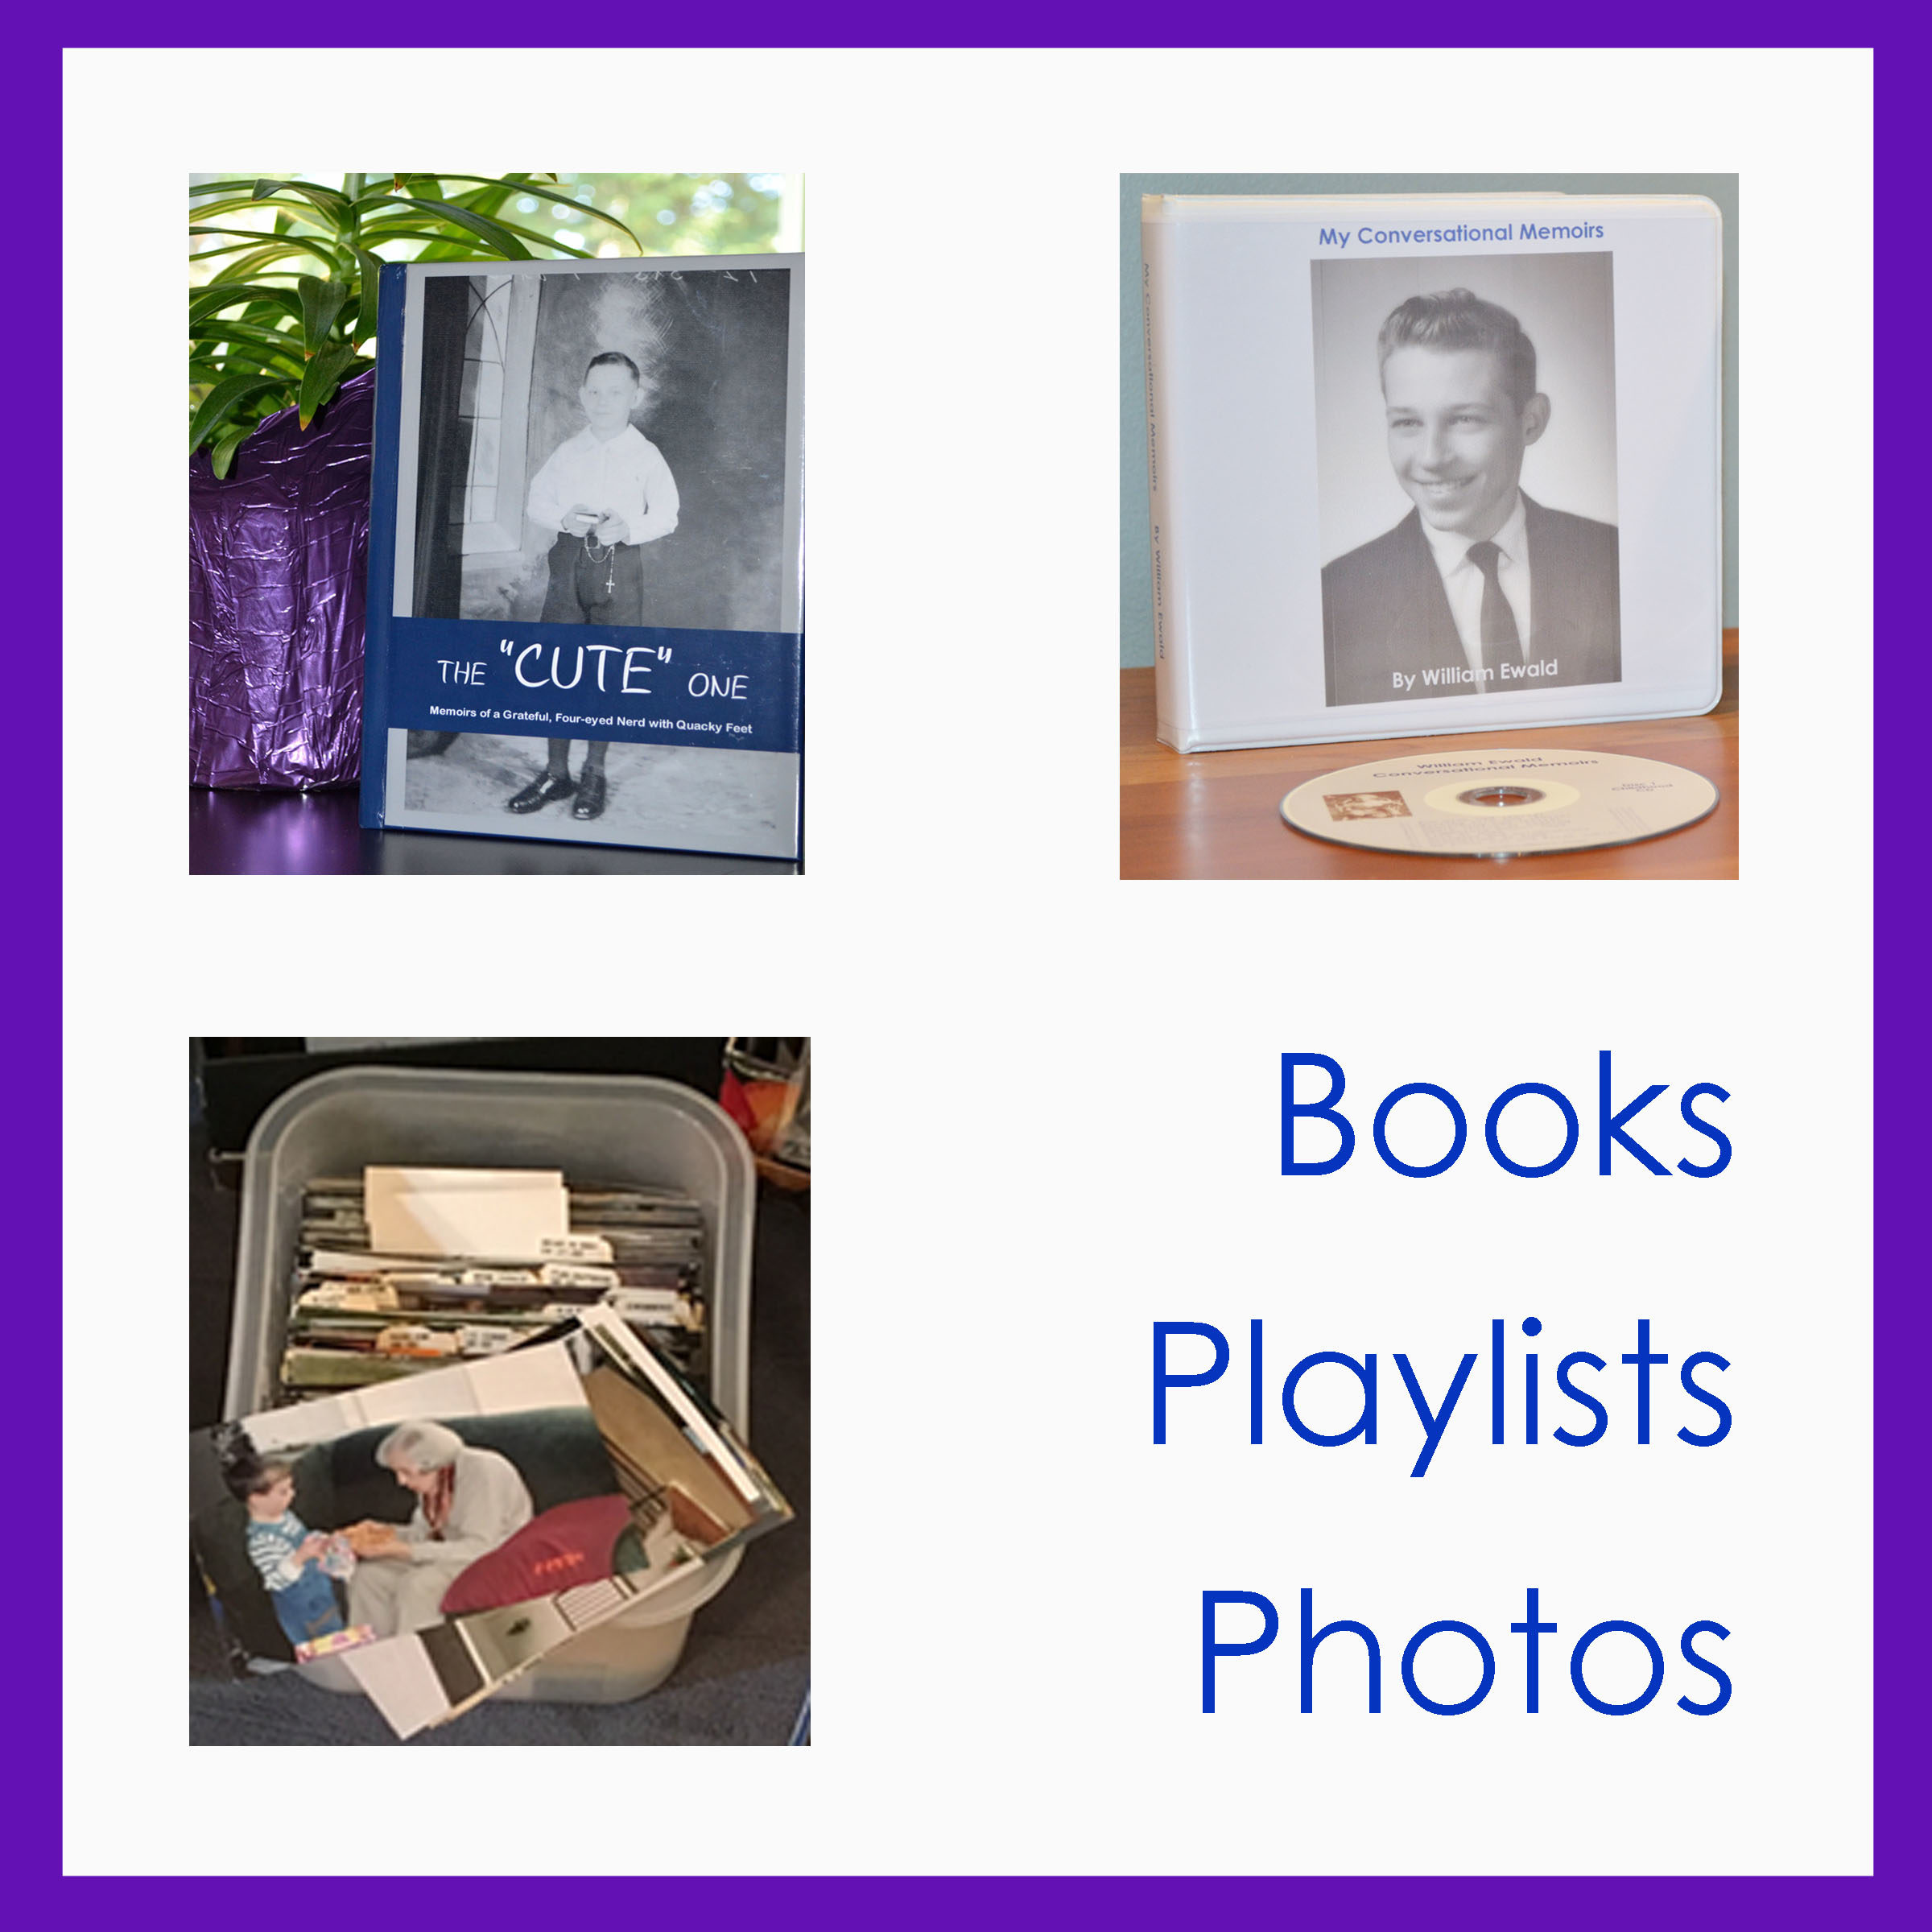 Icon of Books, playlists, and photos.